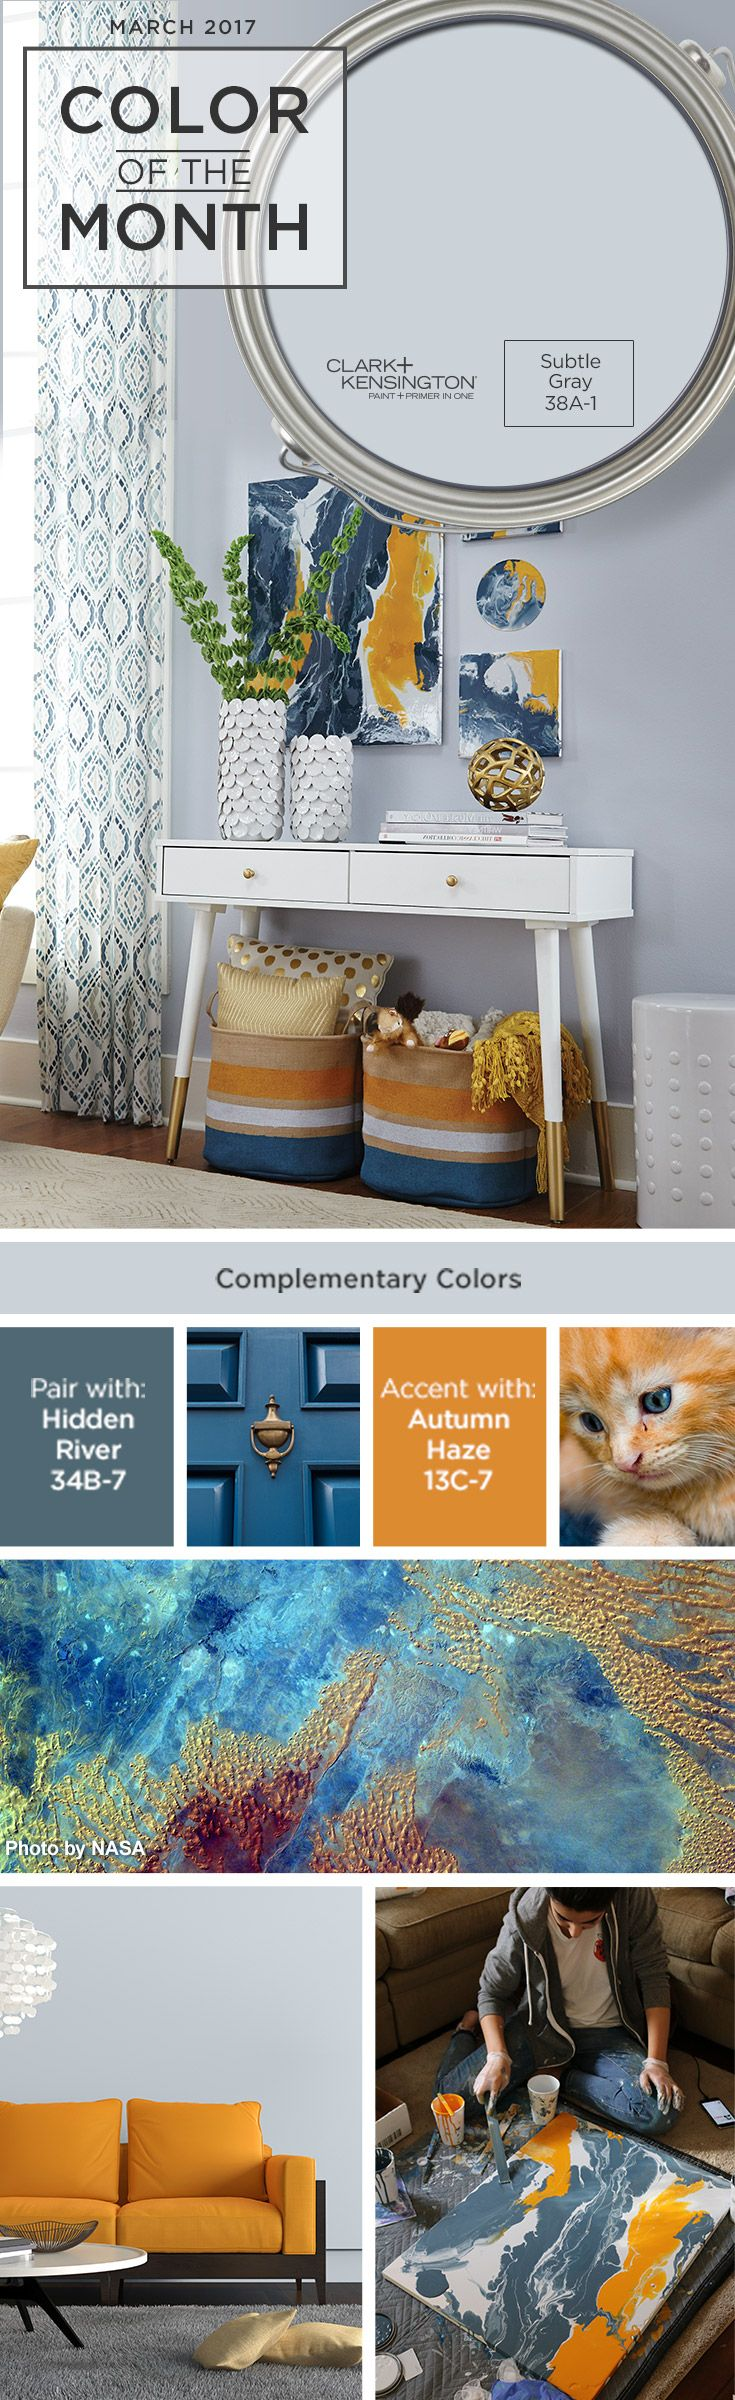 Subtle Gray by Clark + Kensington is our Color of the Month. This paint color matches perfectly with any home decor.